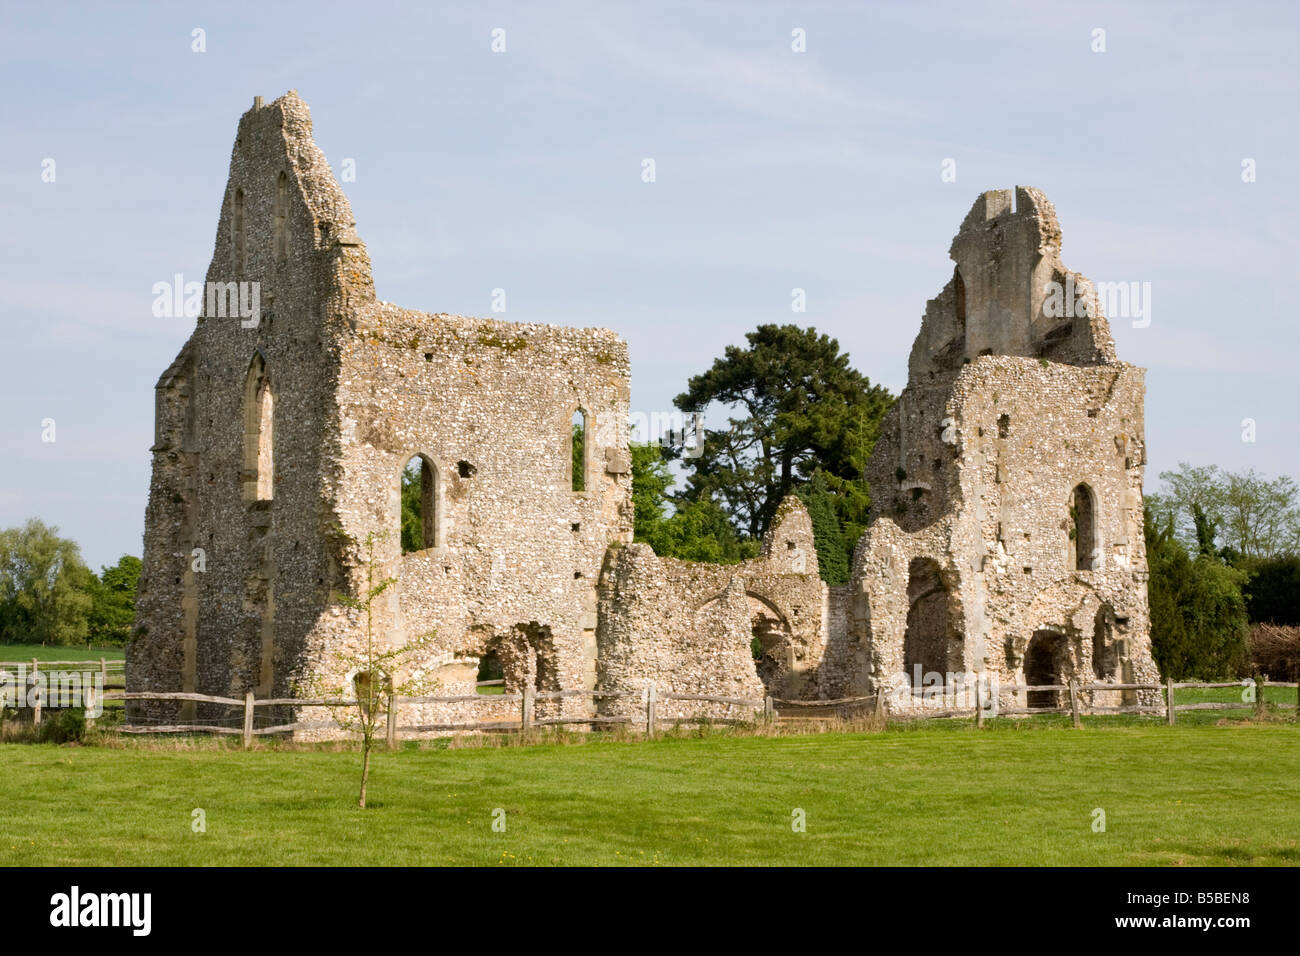 Skelettteile Priory Ruinen, West Sussex, England, Europa Stockfoto ...